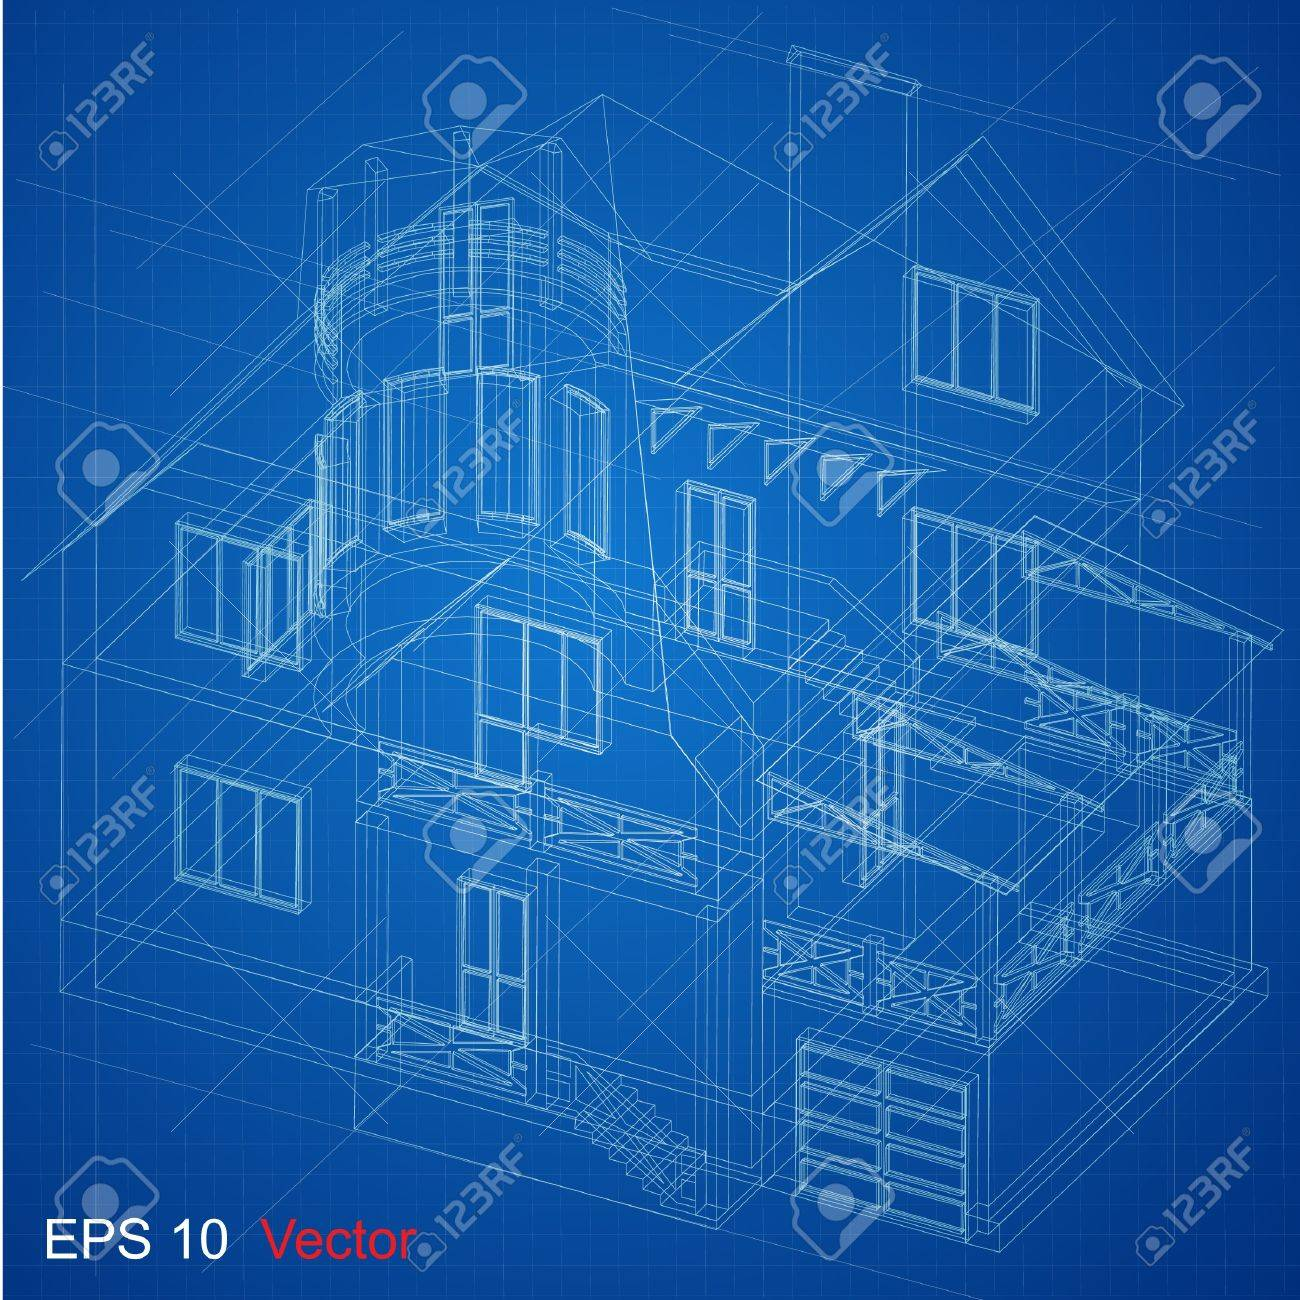 Urban Blueprint  vector   Architectural background  Part of architectural project, architectural plan, technical project, drawing technical letters, design on paper, construction plan Stock Vector - 14404026